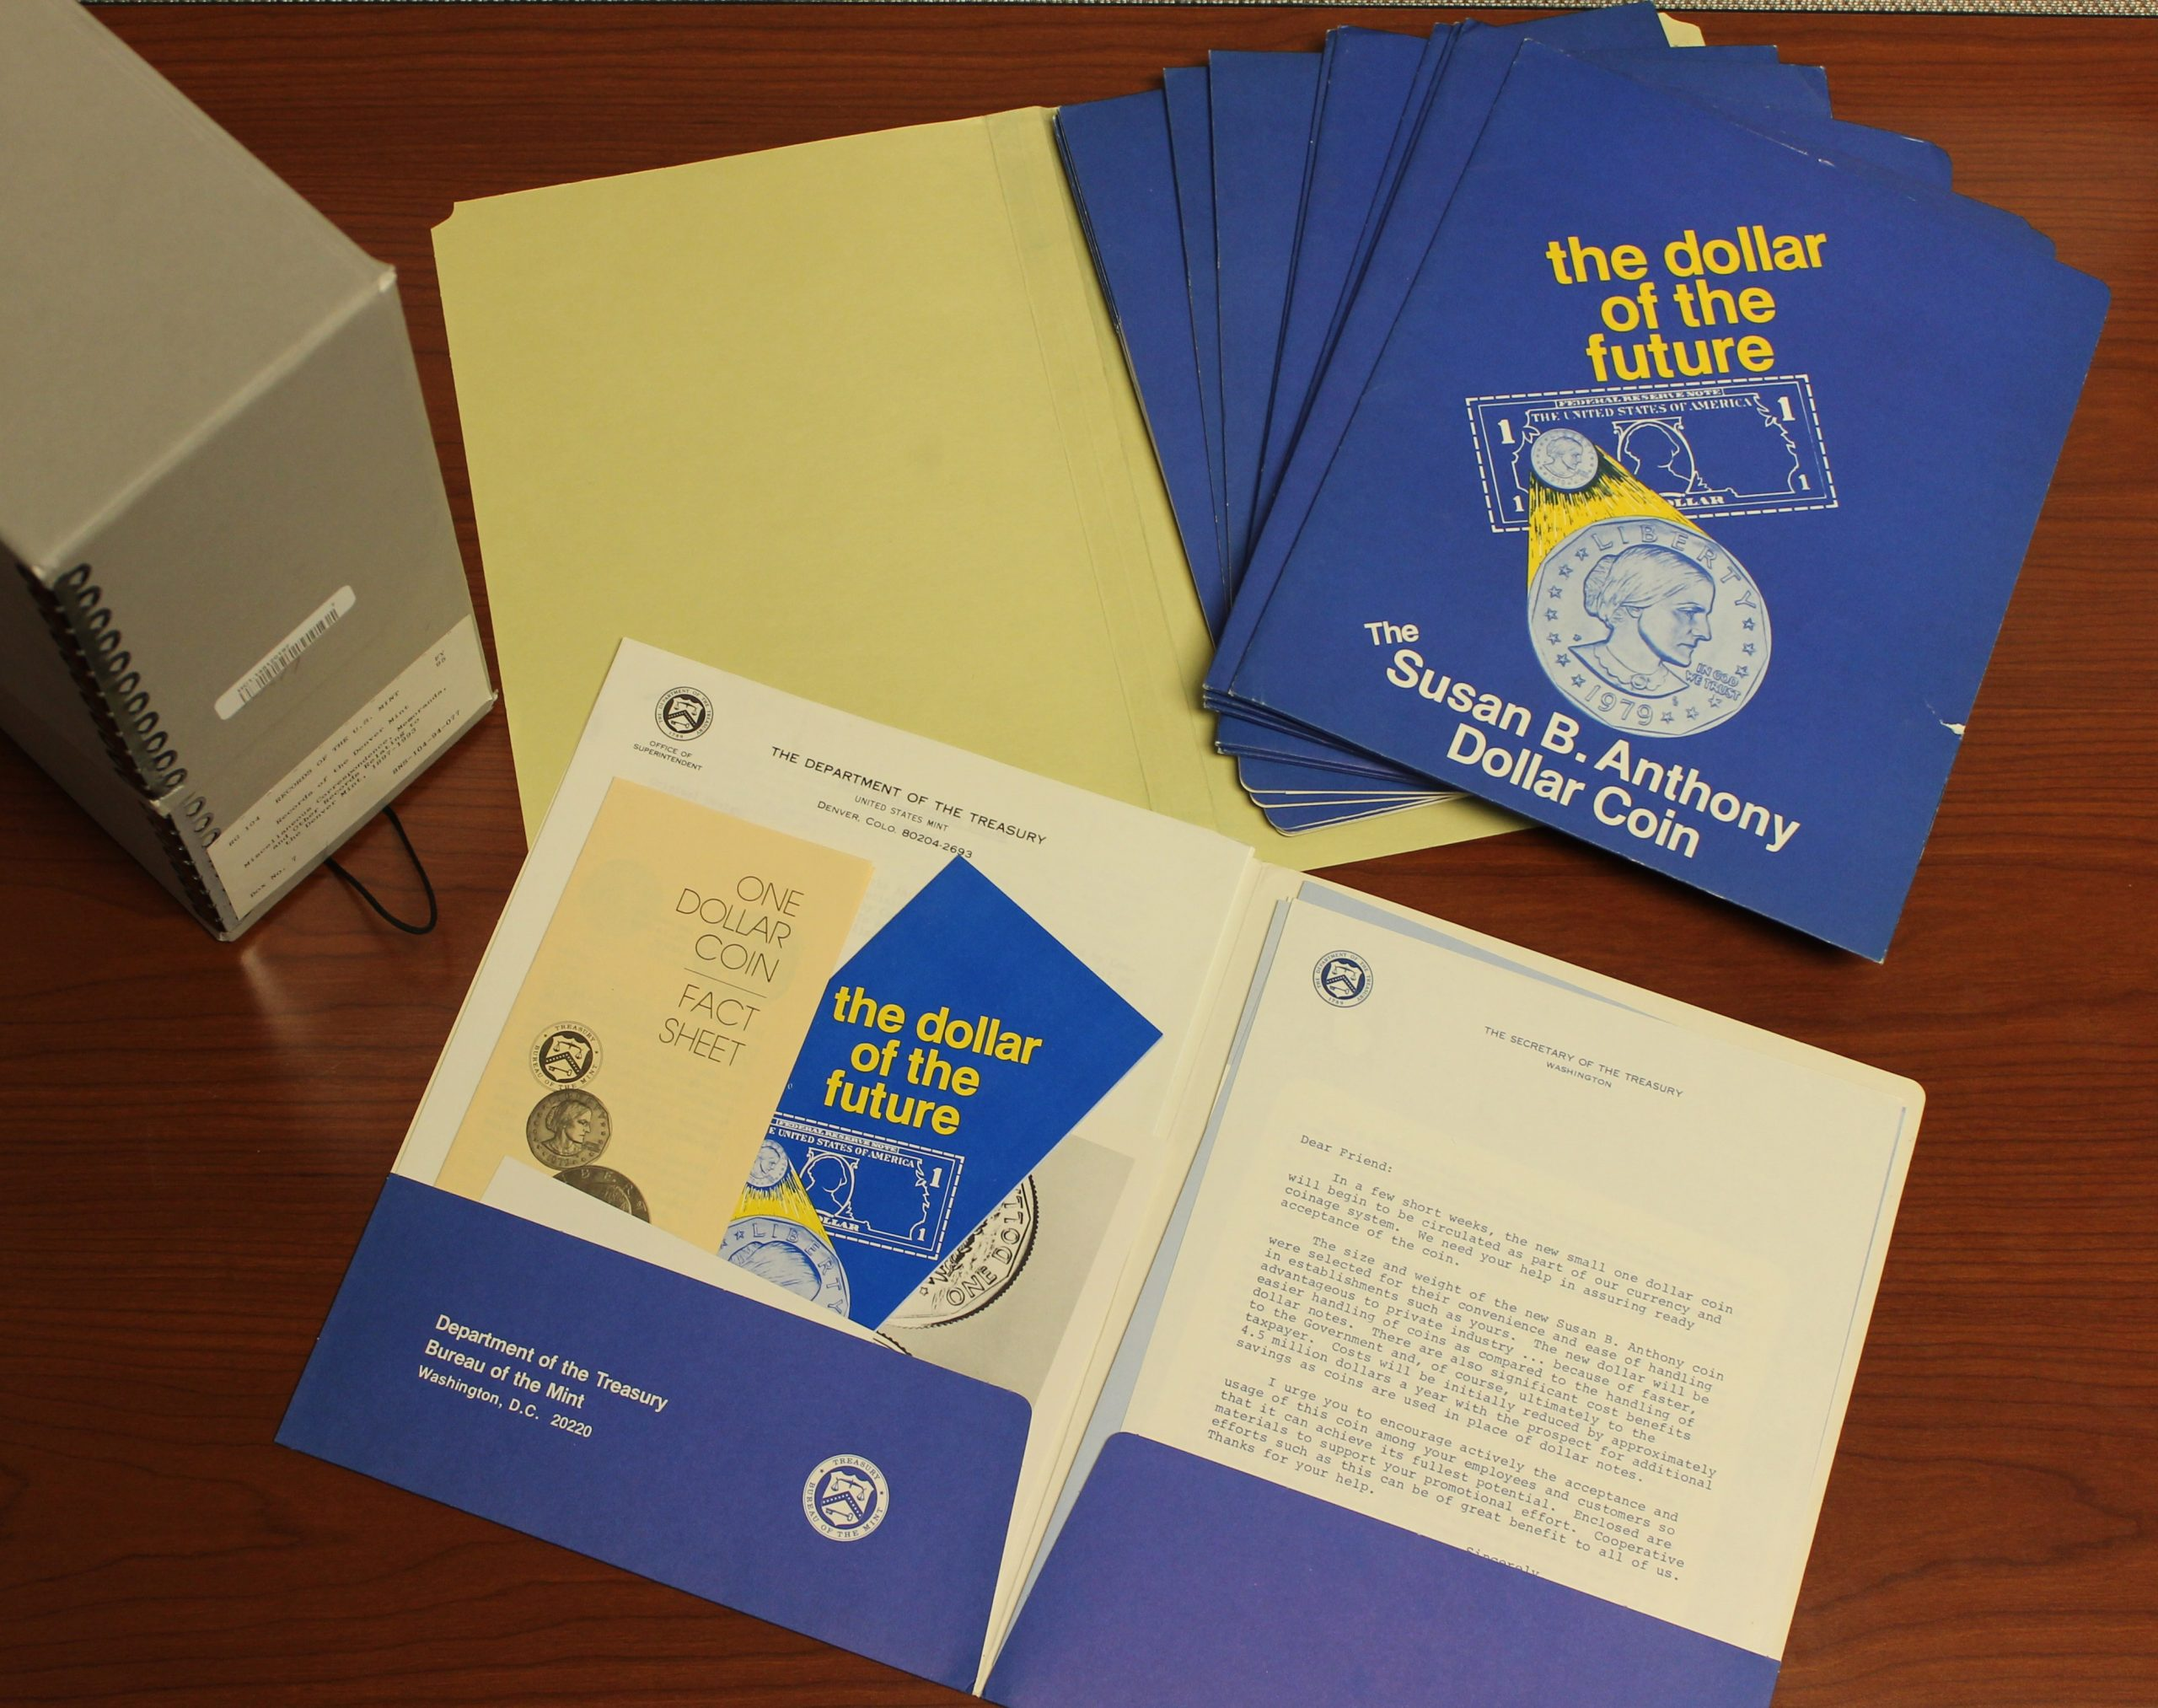 blue folders containing promotional text and pamphlets